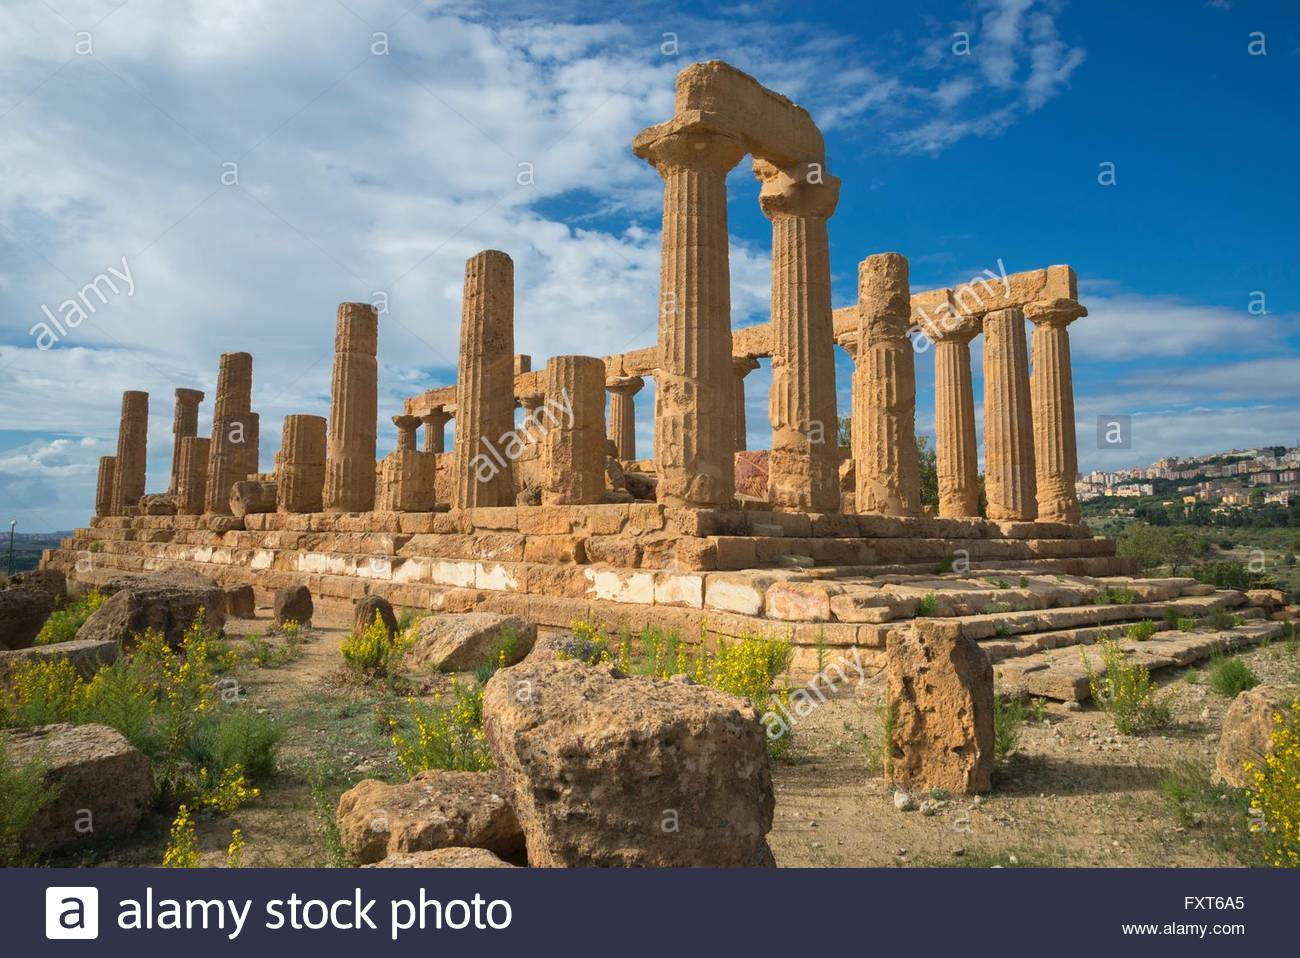 Temple of Juno, Valley of the Temples, Agrigento, Sicily, Italy - Stock Image